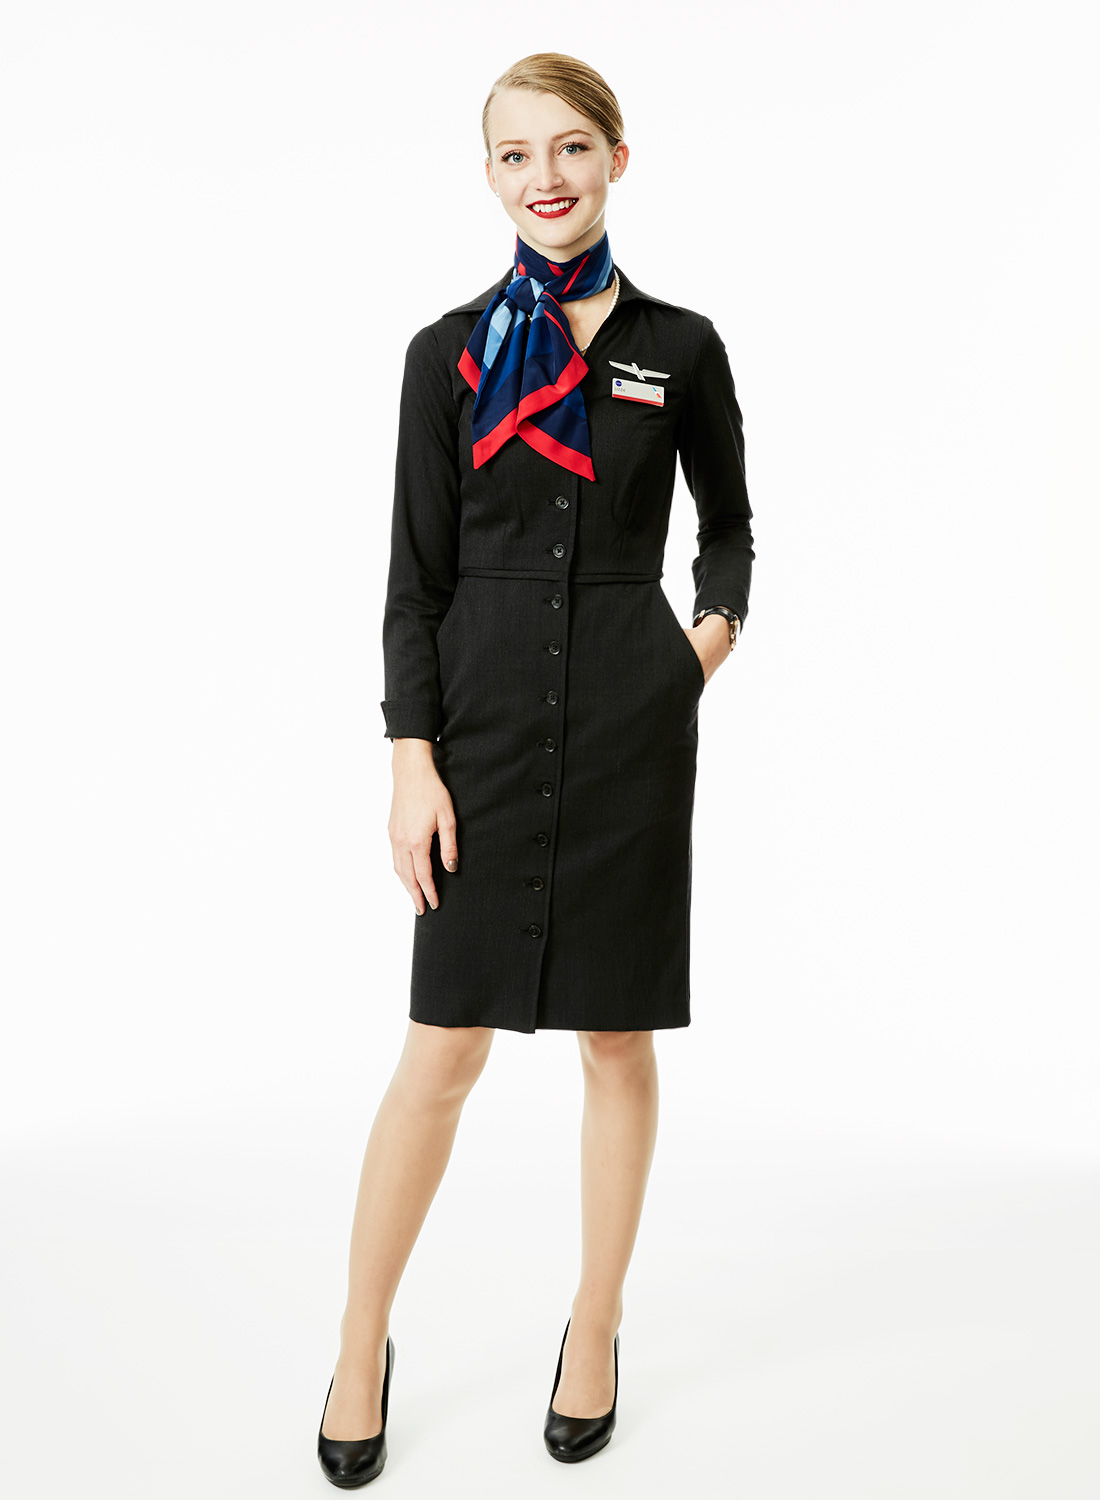 160920_AmericanAirlines_Portraits_By_BriJohnson_0017.jpg